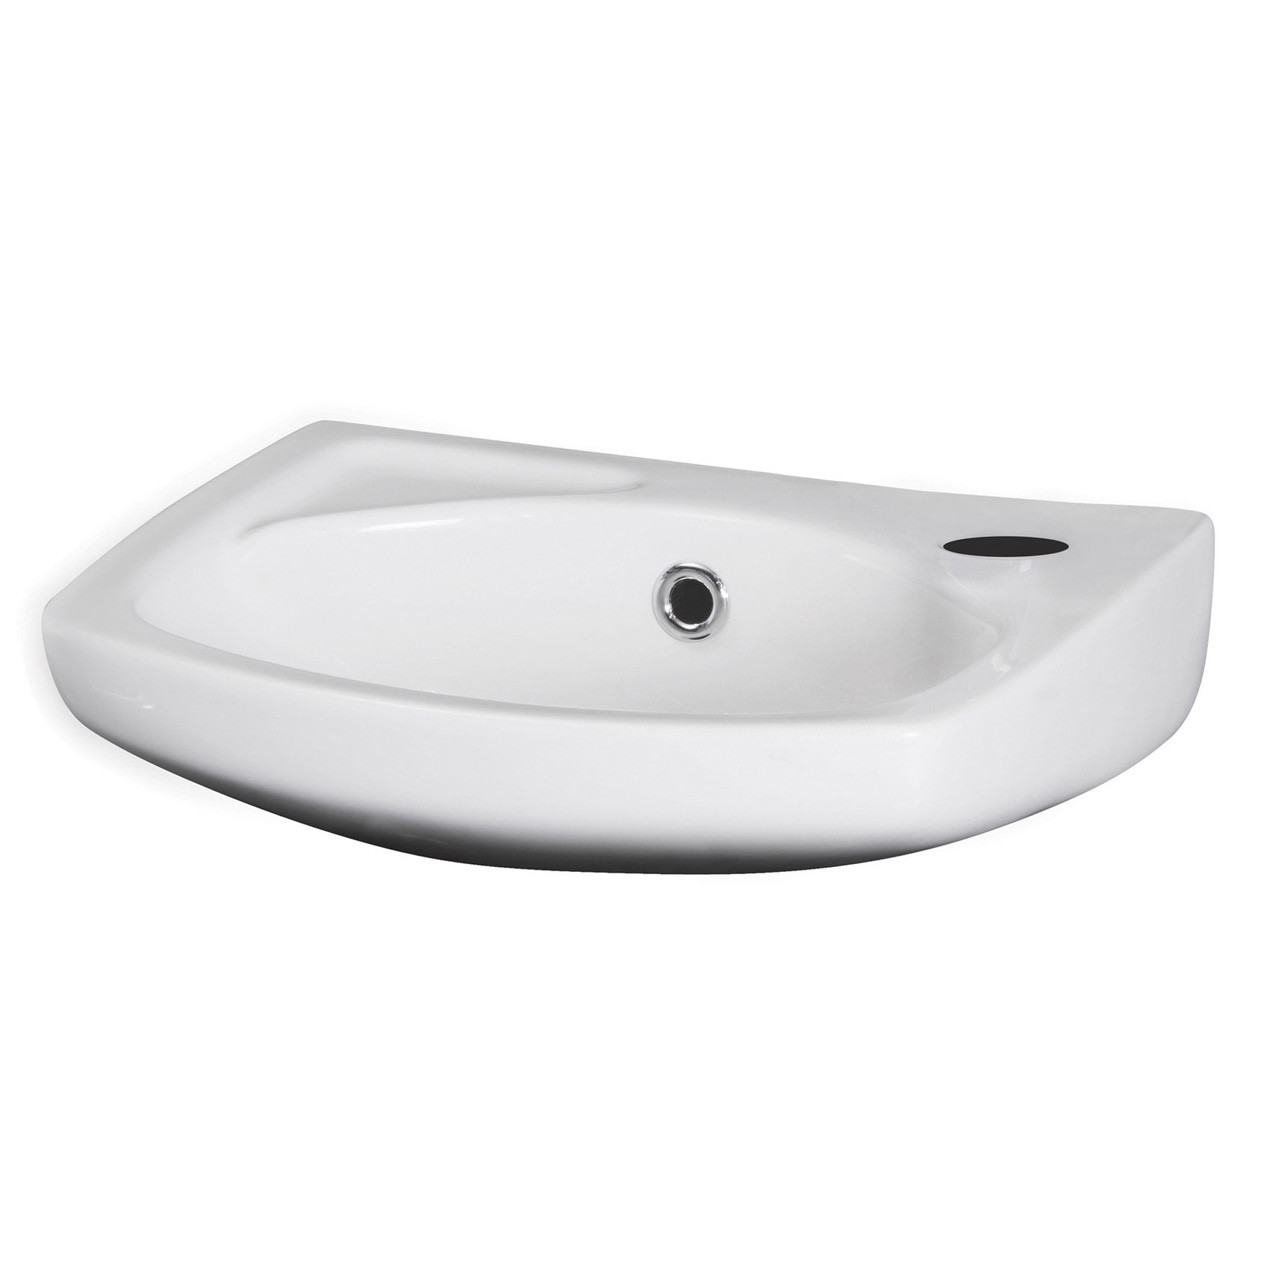 Nuie 350mm Wall Hung Basin with 1 Tap Hole - NCU832